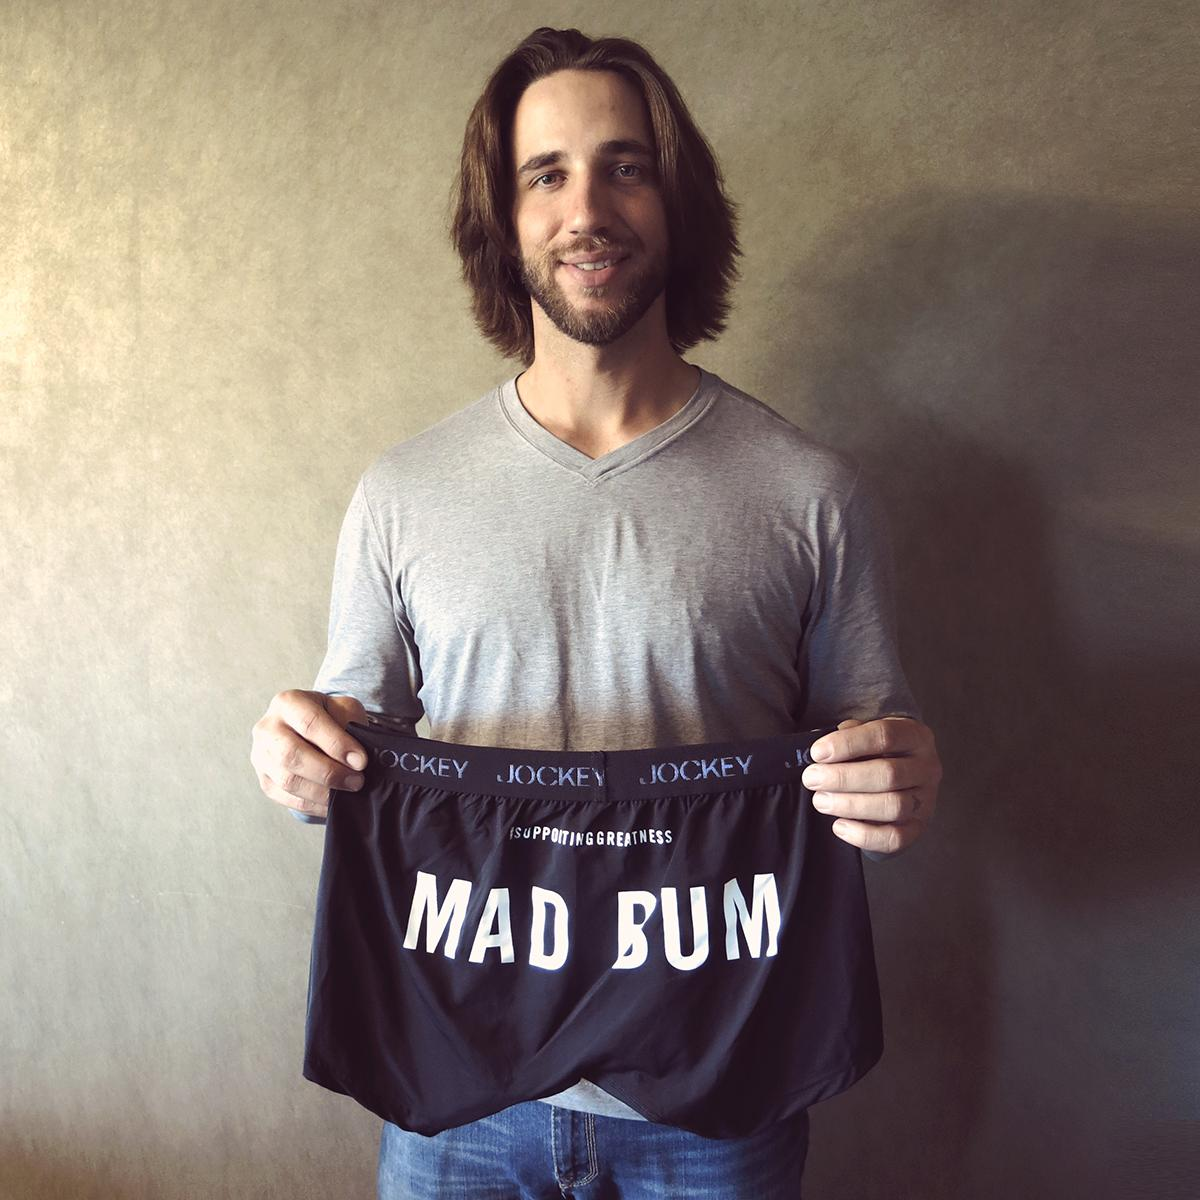 We support great athletes, great underwear & athletes with great underwear nicknames. #MadBum #SupportingGreatness http://t.co/zdXm8tt5H4